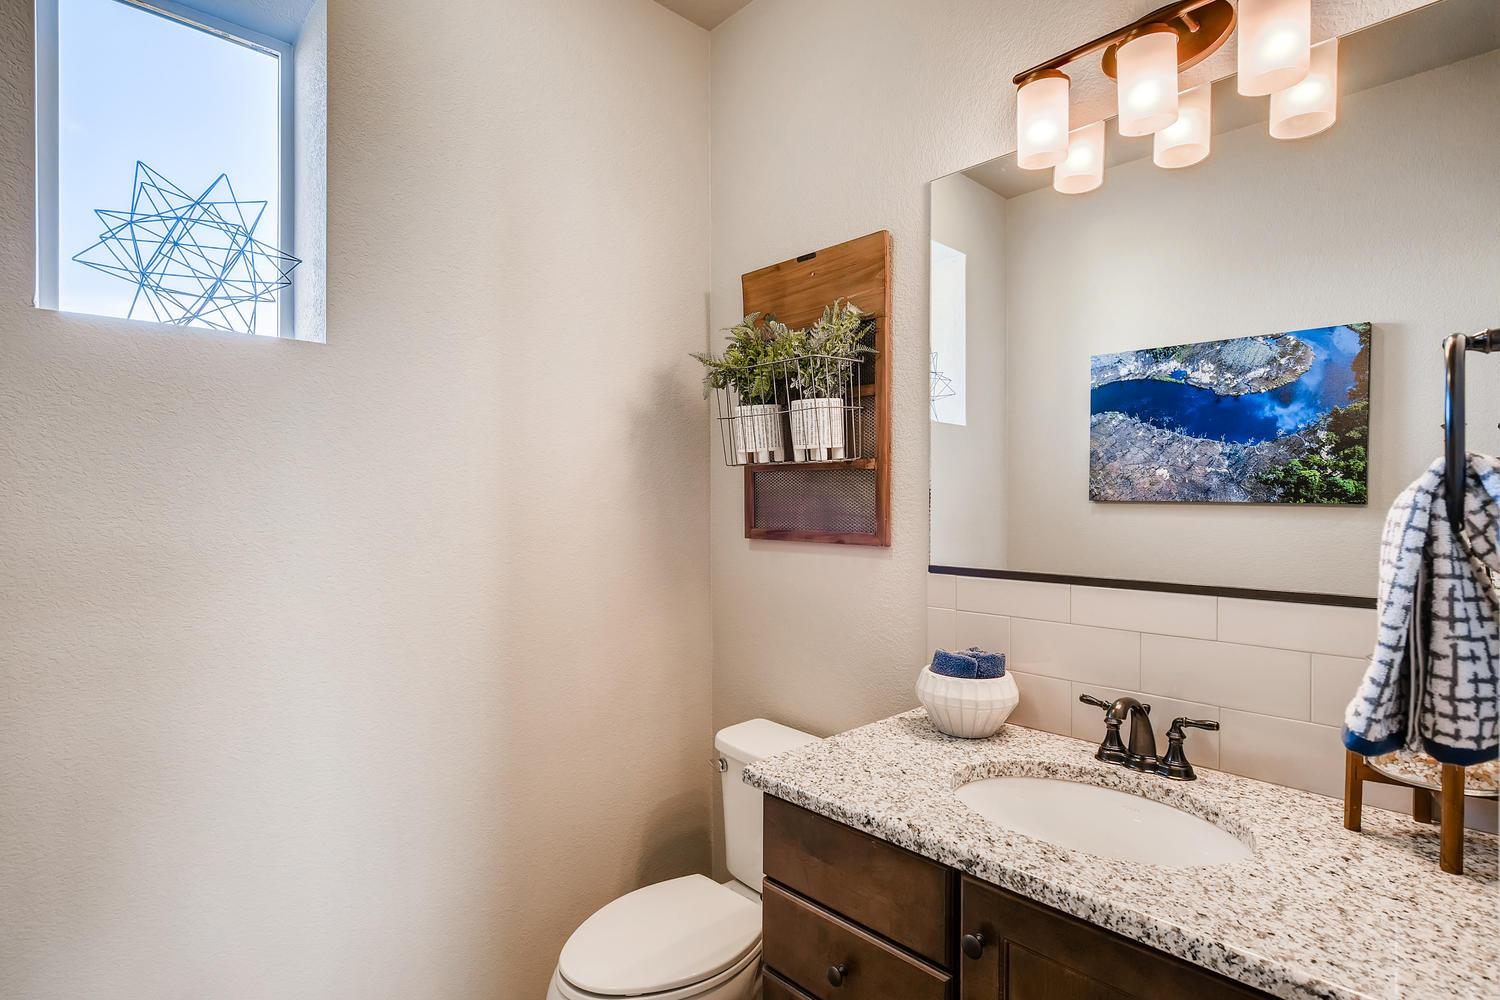 Bathroom featured in the 224 By Classic Homes in Colorado Springs, CO